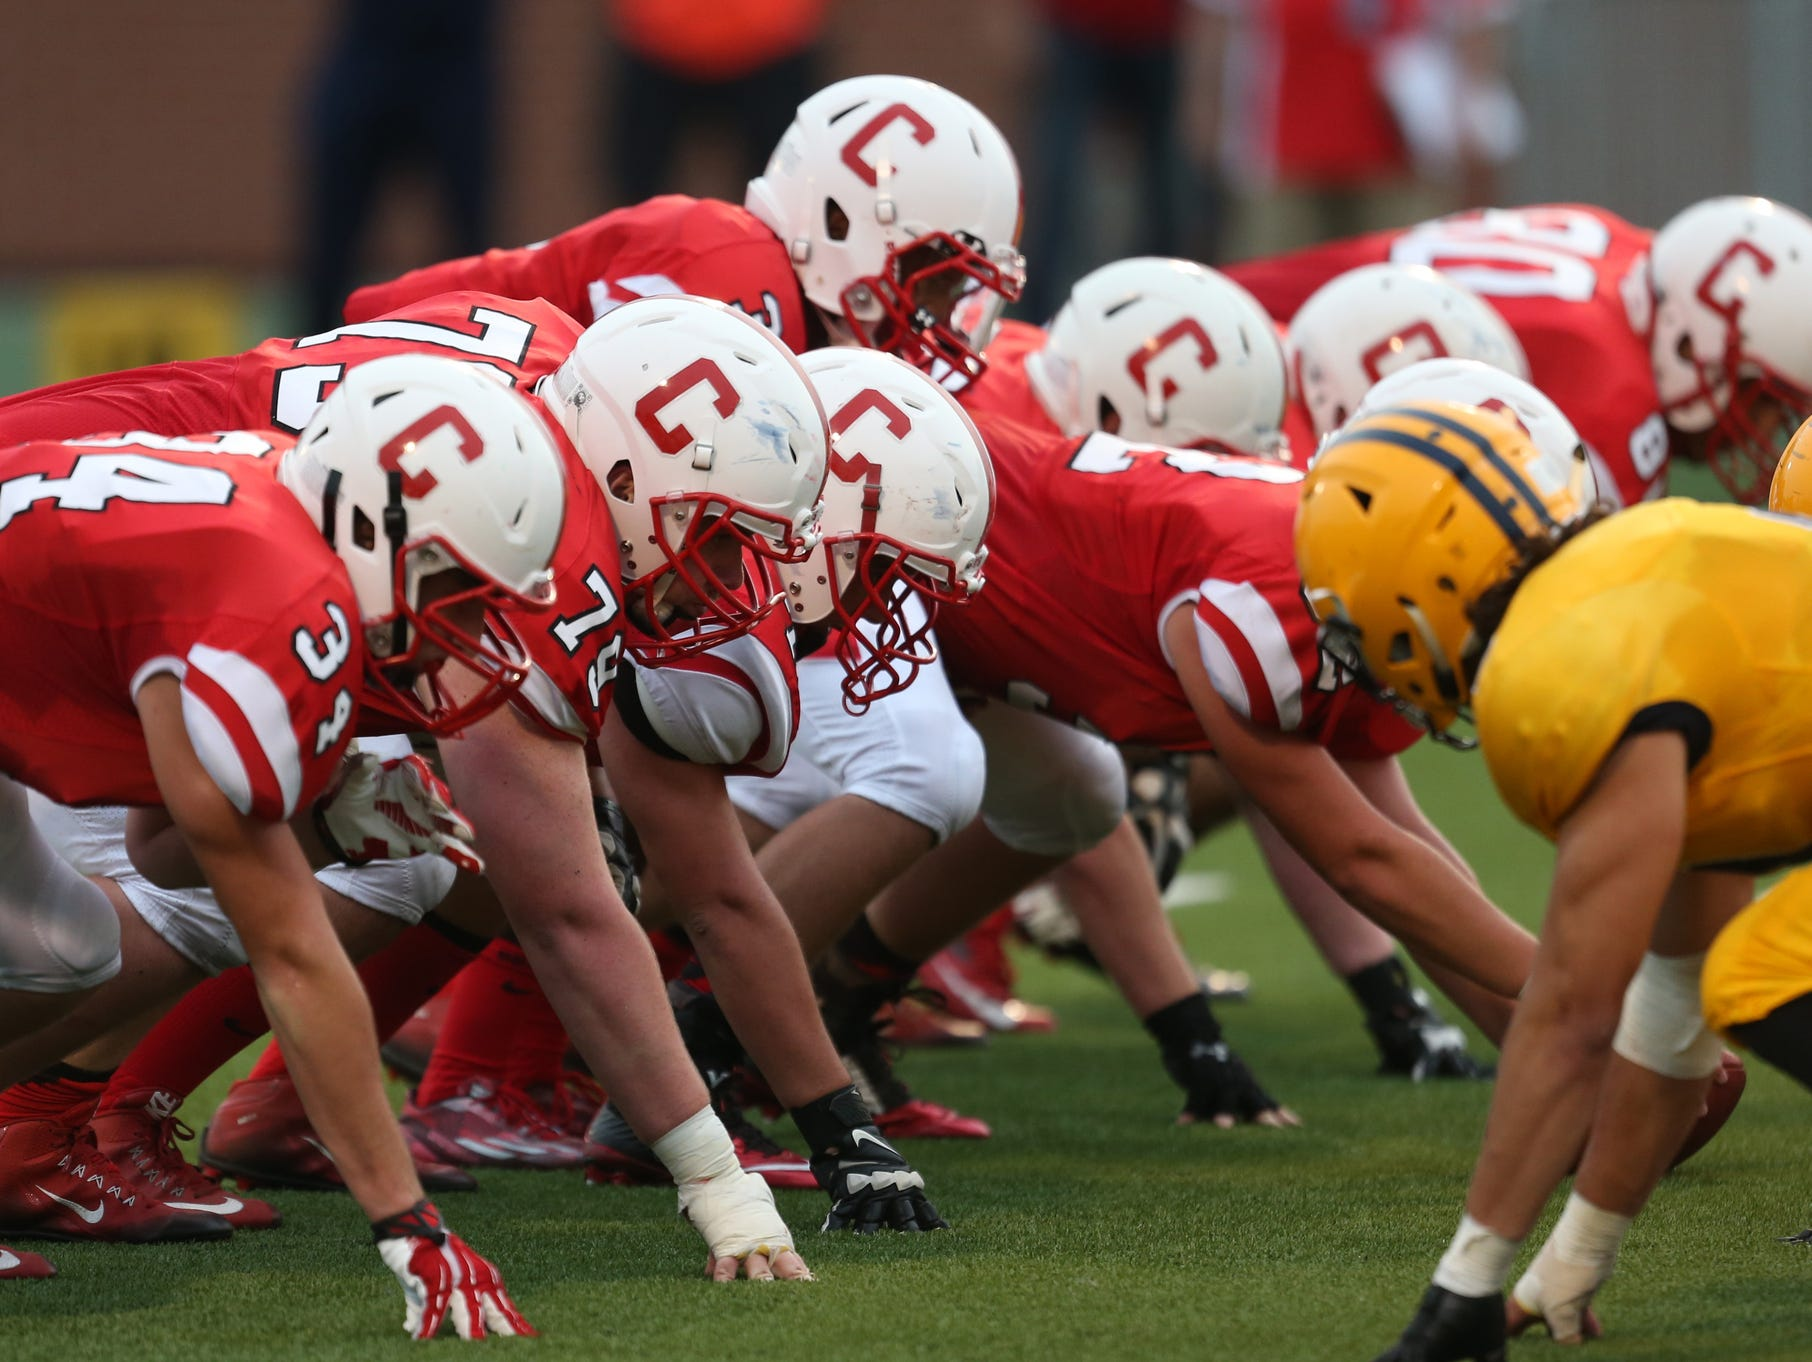 Canton lines up against Dearborn Fordson on Friday, Aug. 28, 2015, at Wayne State's Tom Adams Field in Detroit.